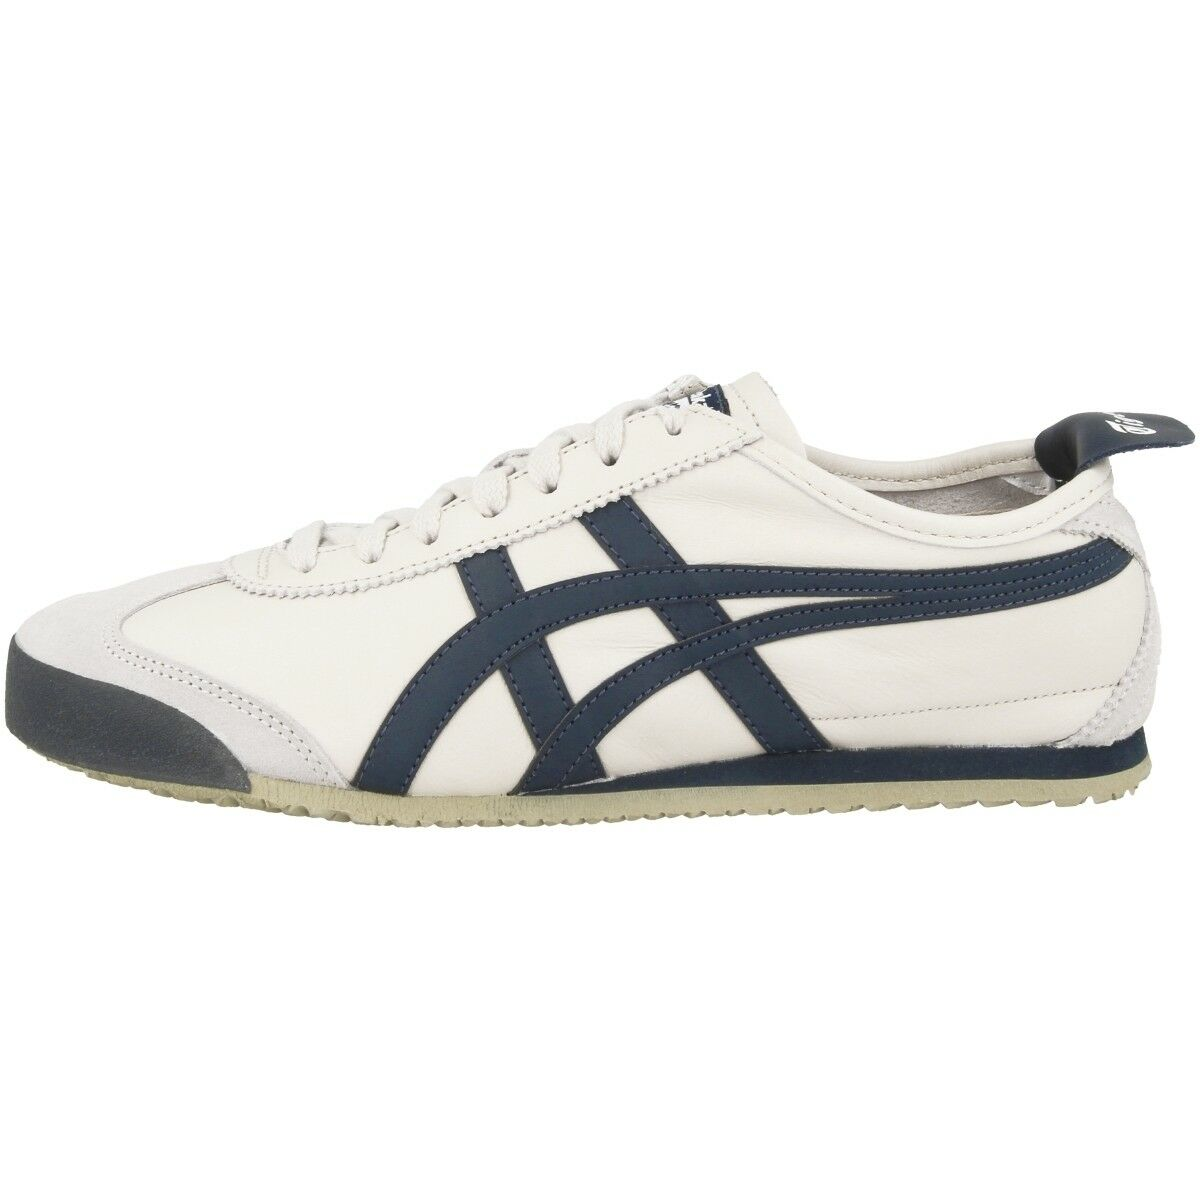 Asics Onitsuka birch Tiger Mexico 66 Schuhe birch Onitsuka ink latte DL408-1659 Retro Sneaker e105db